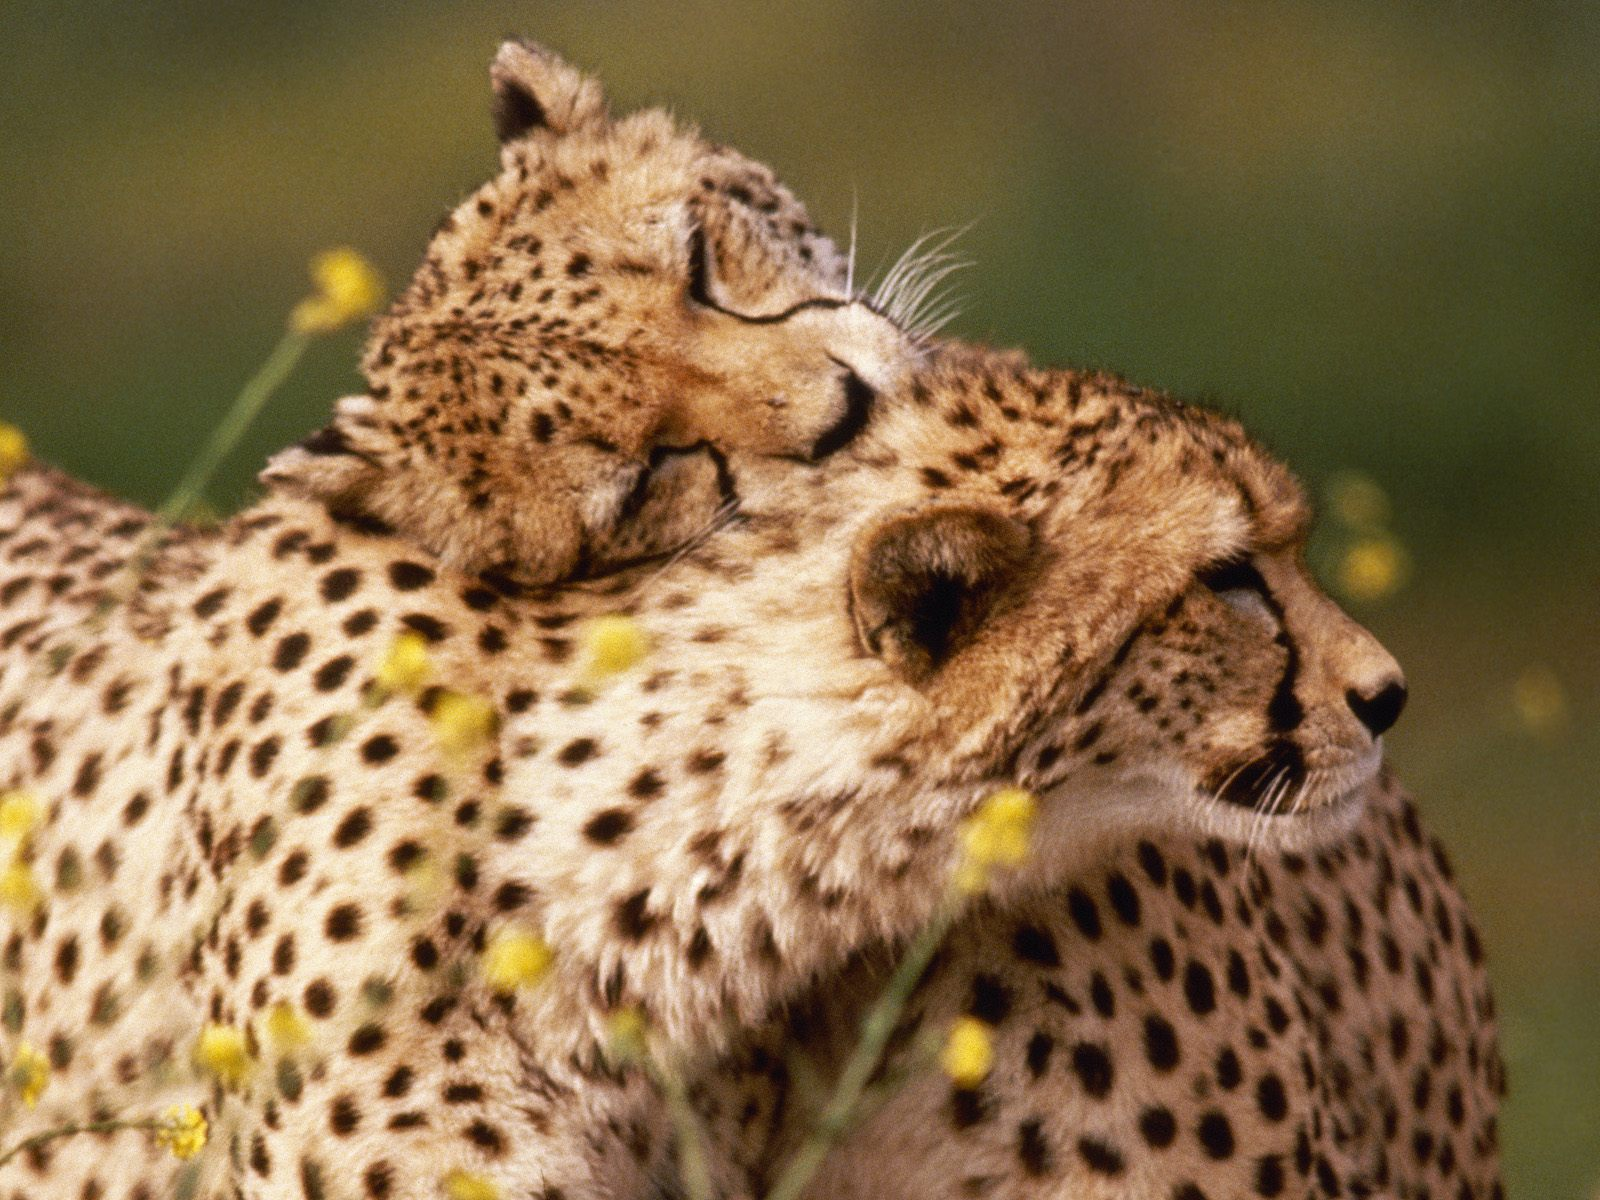 Affectionate Cheetahs